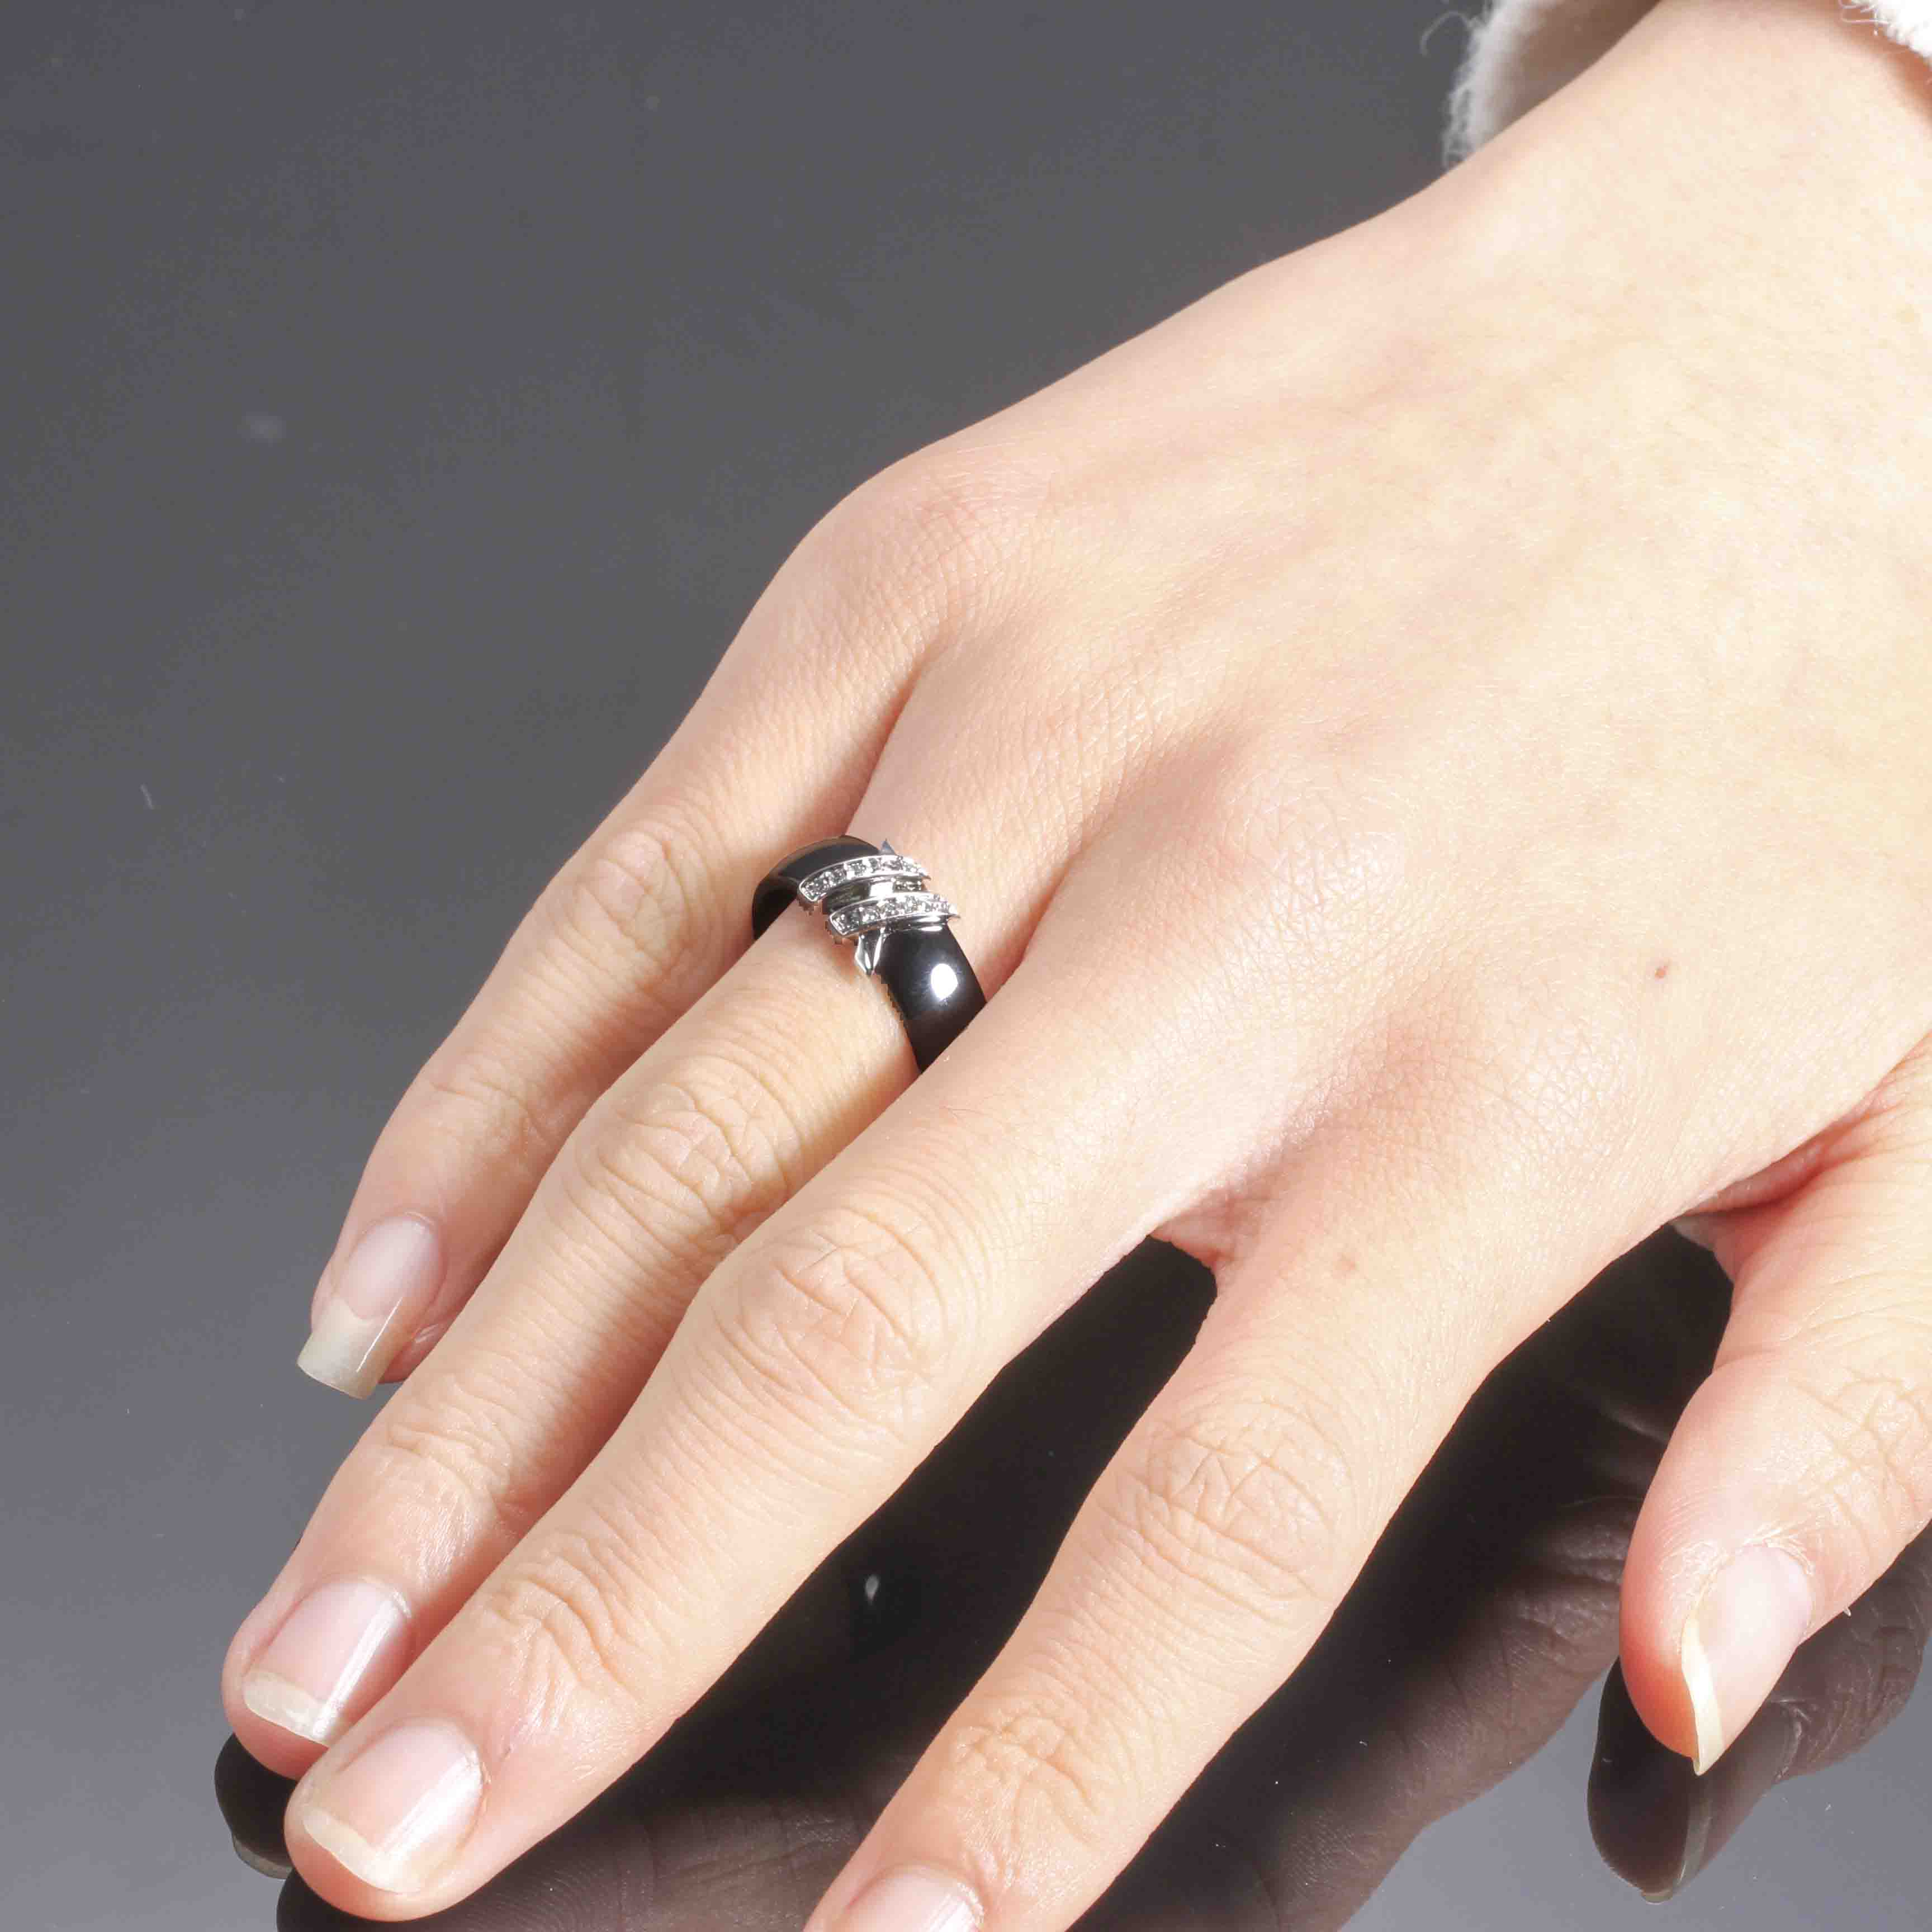 Best 6mm High Quality Black And White Simple Style Two Line Crystal Ziron Ceramic Rings For Women Fashion Jewelry Gift 2